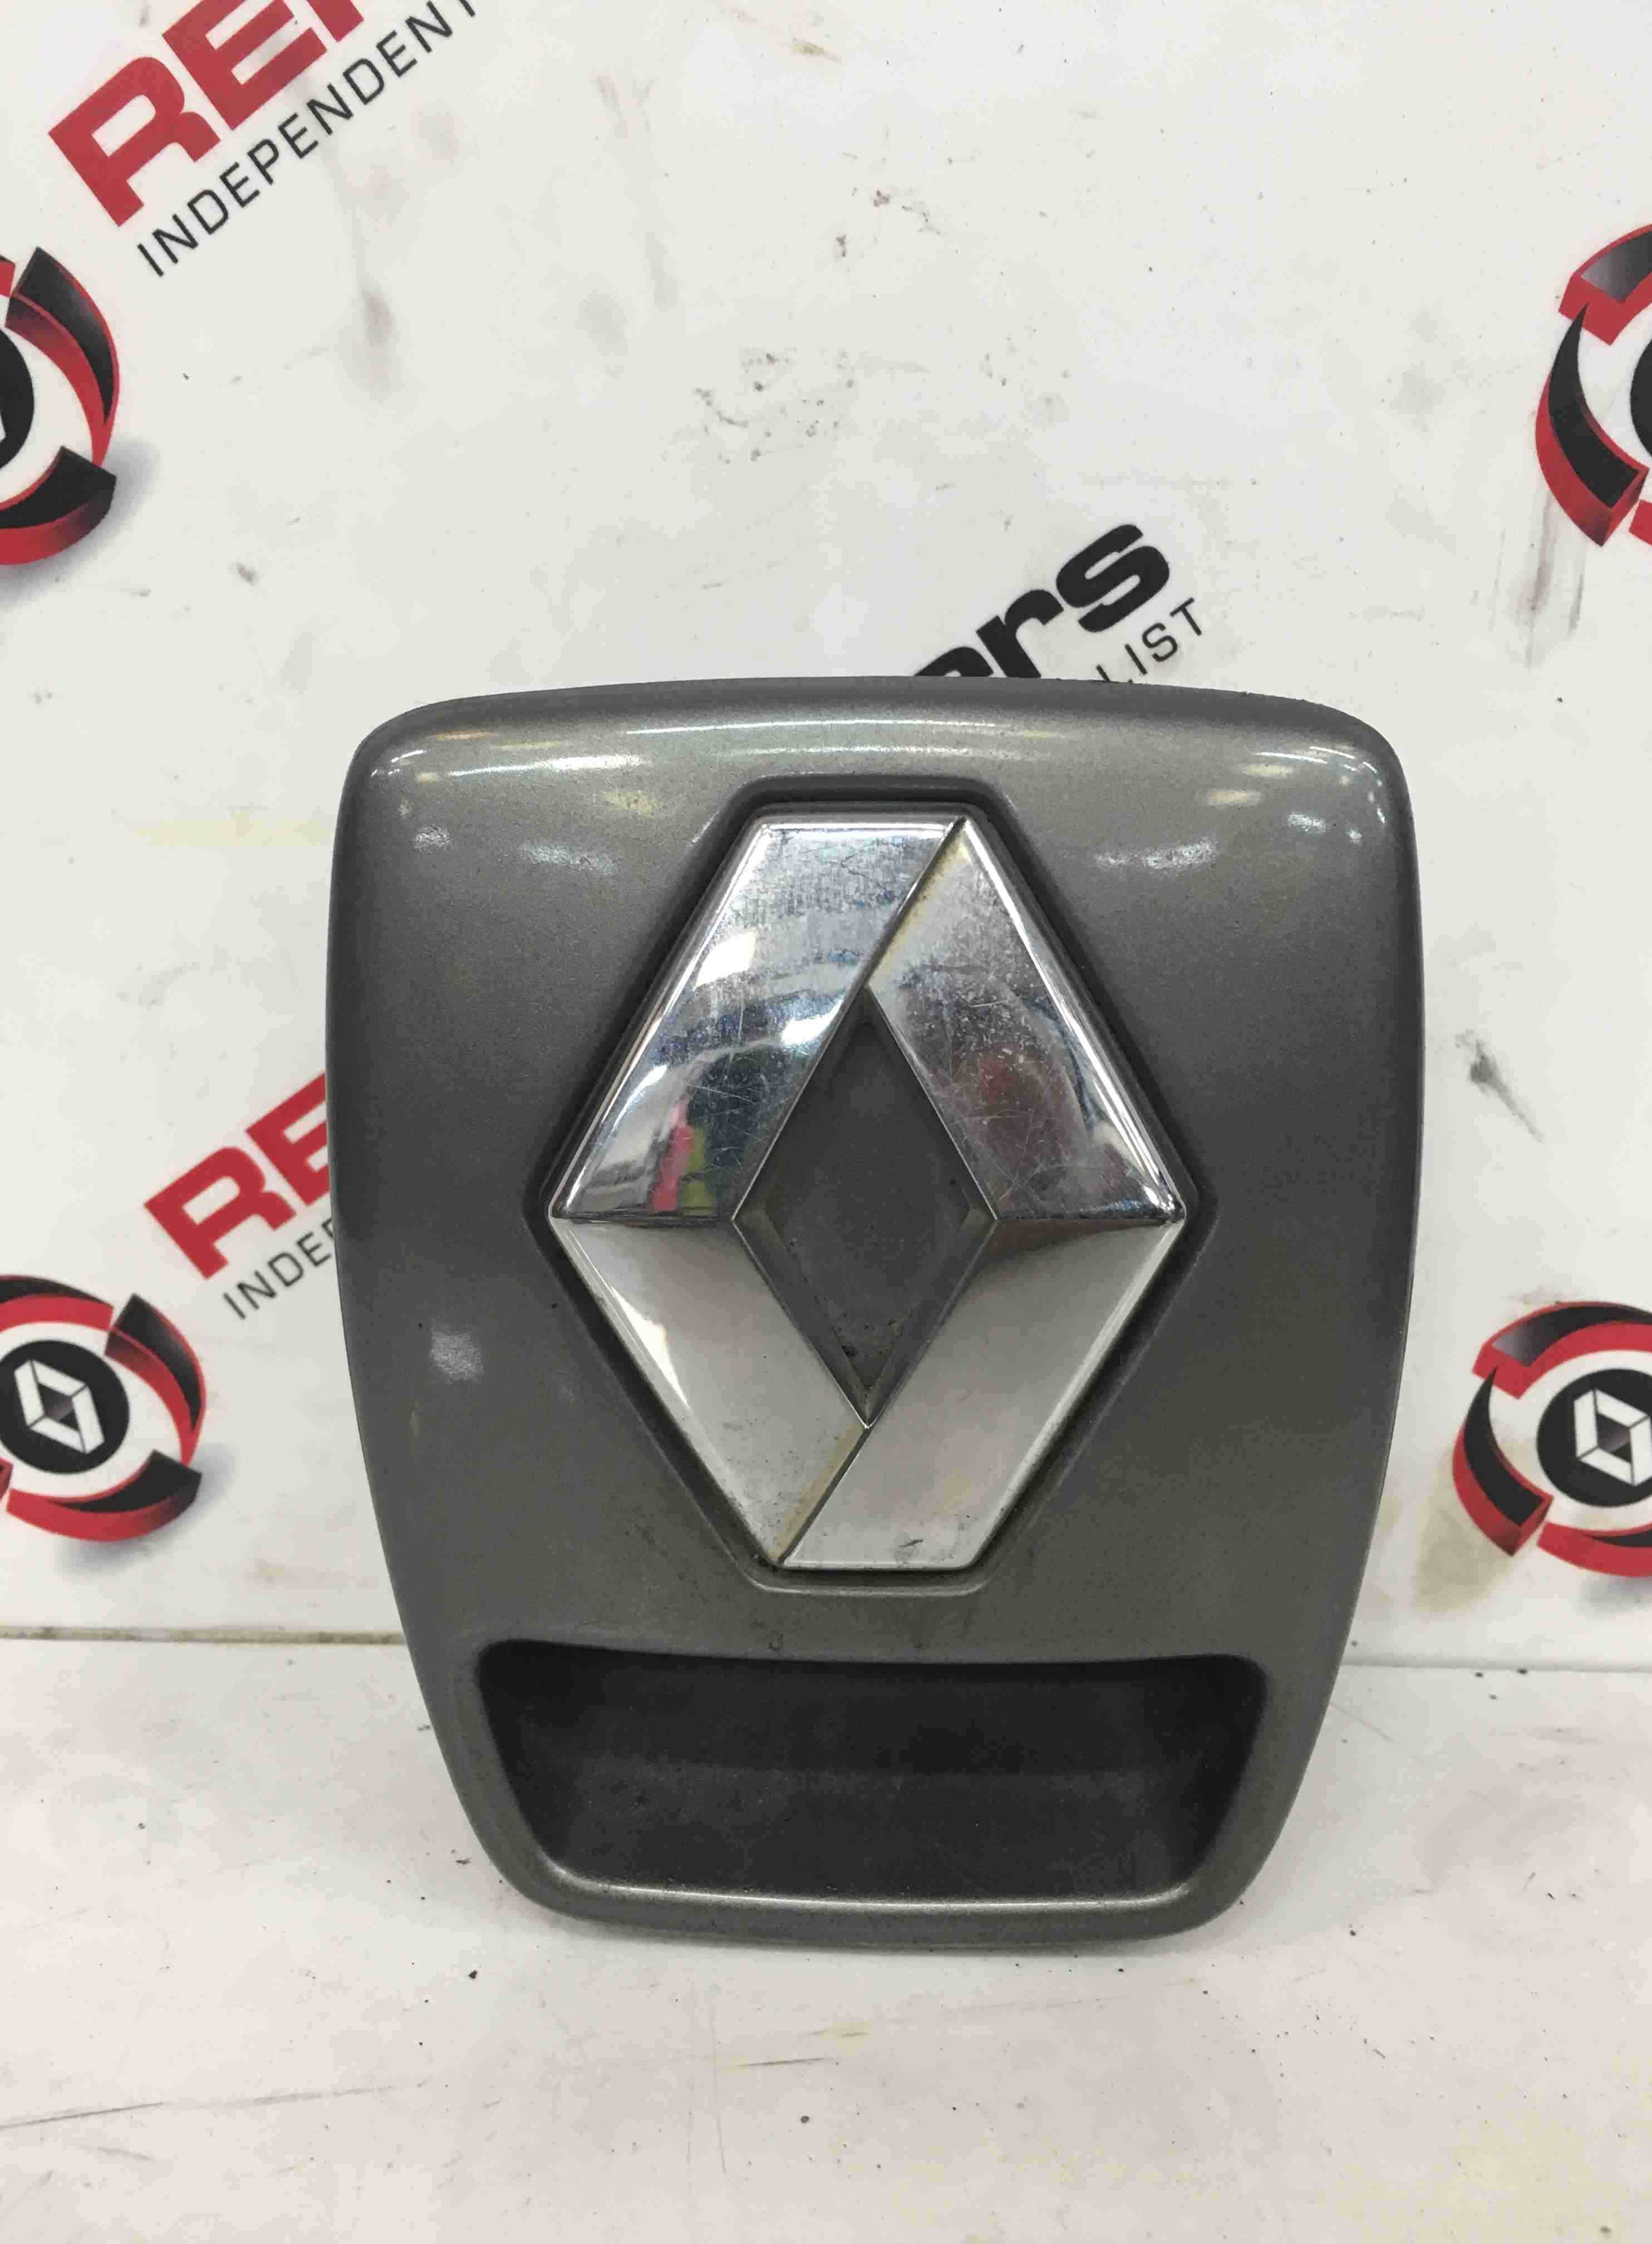 Renault Laguna 2001-2005 Rear Boot Button With Surround Grey 603